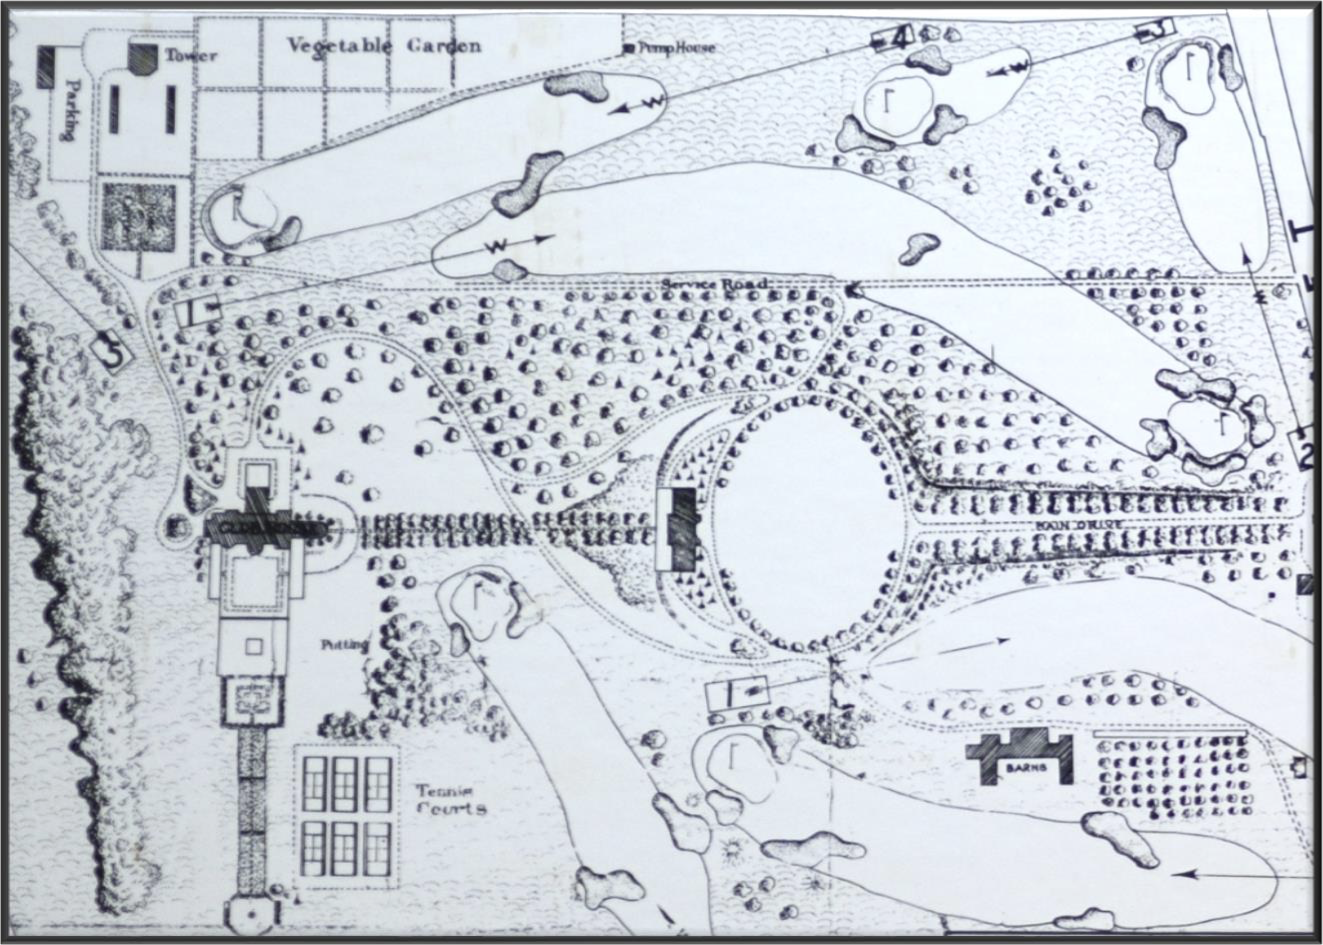 An original drawing of the club grounds. The farm sits on land originally planned as a vegetable garden.